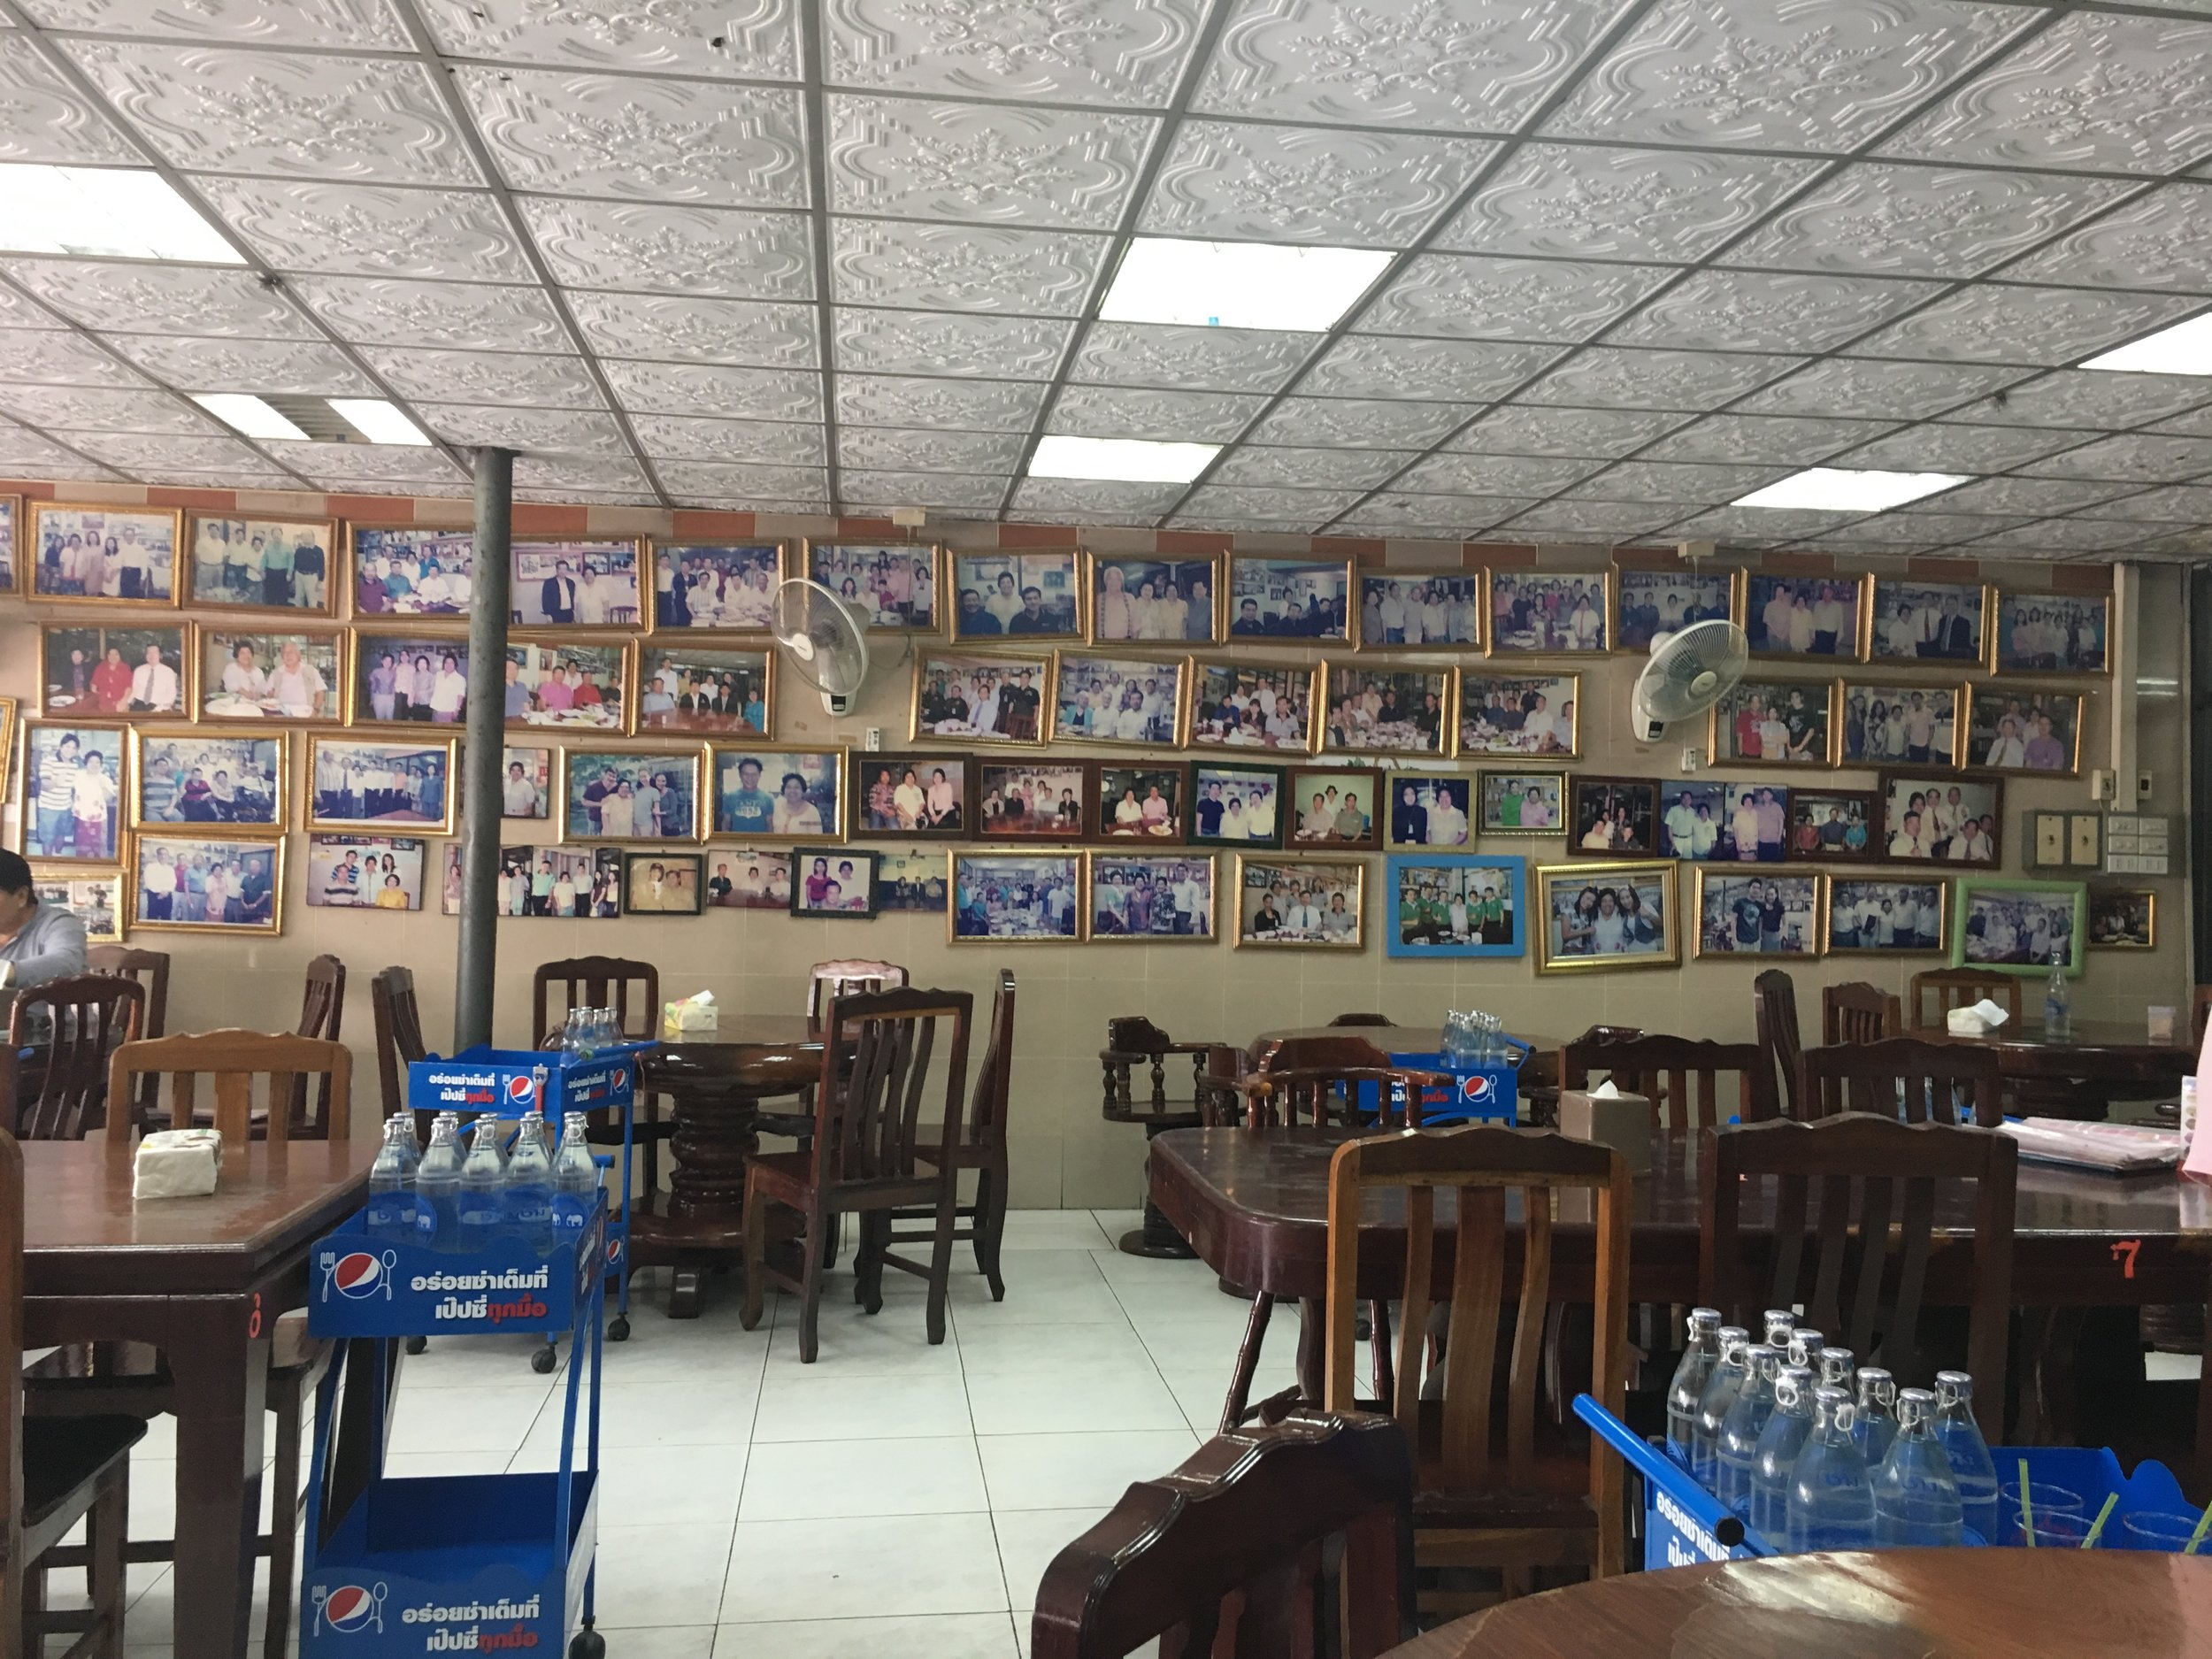 The walls of Je Dum restaurant laden with pictures of famous people and dignitaries